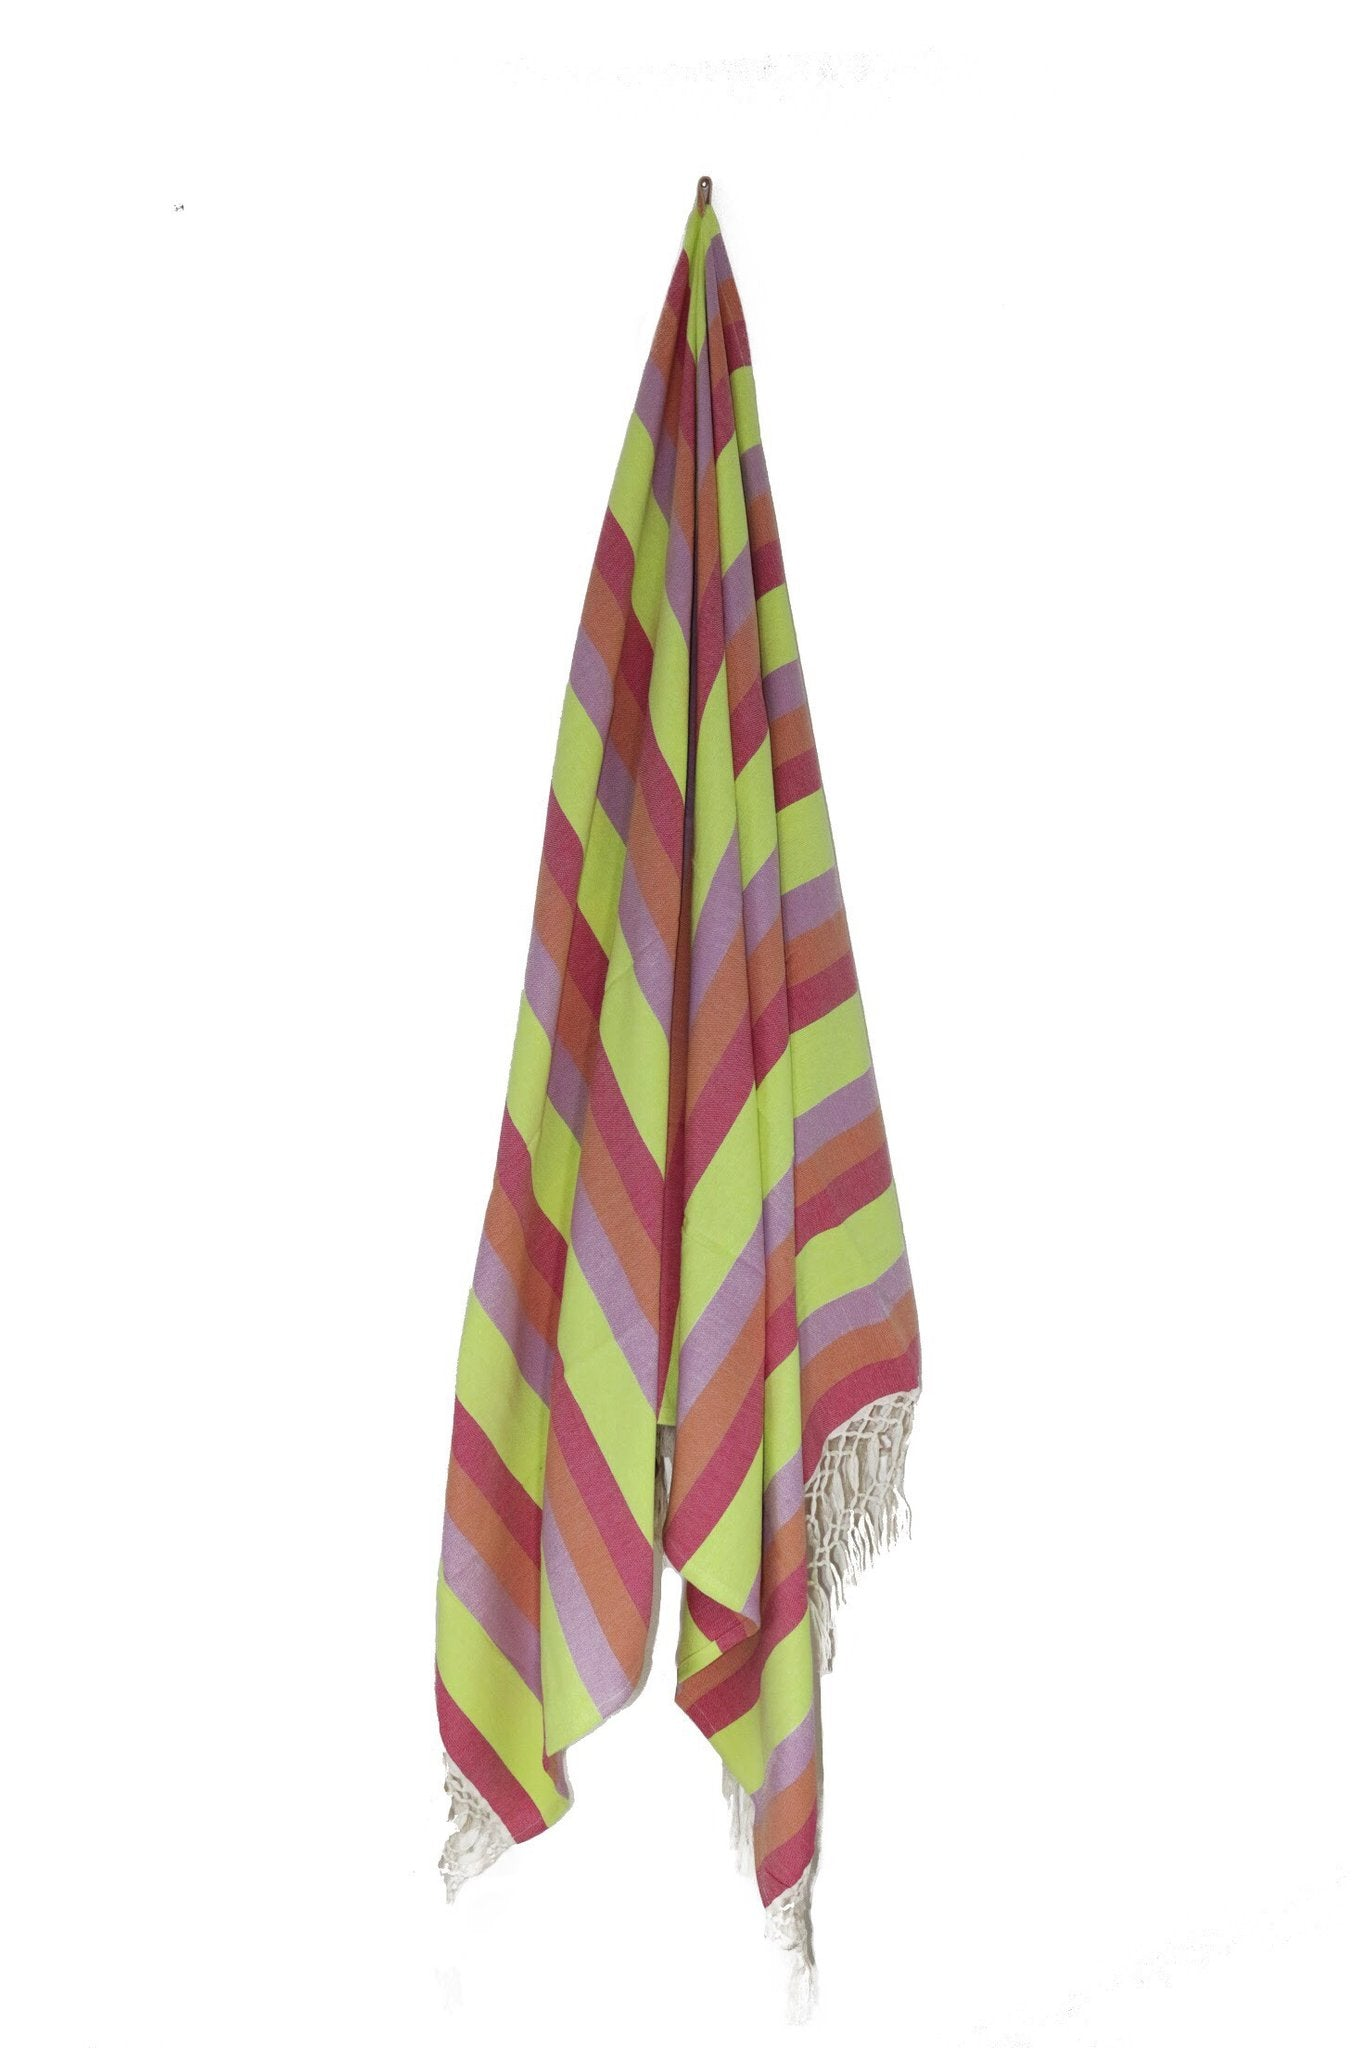 SALTWATER SUMMER - Momi Beach Blanket